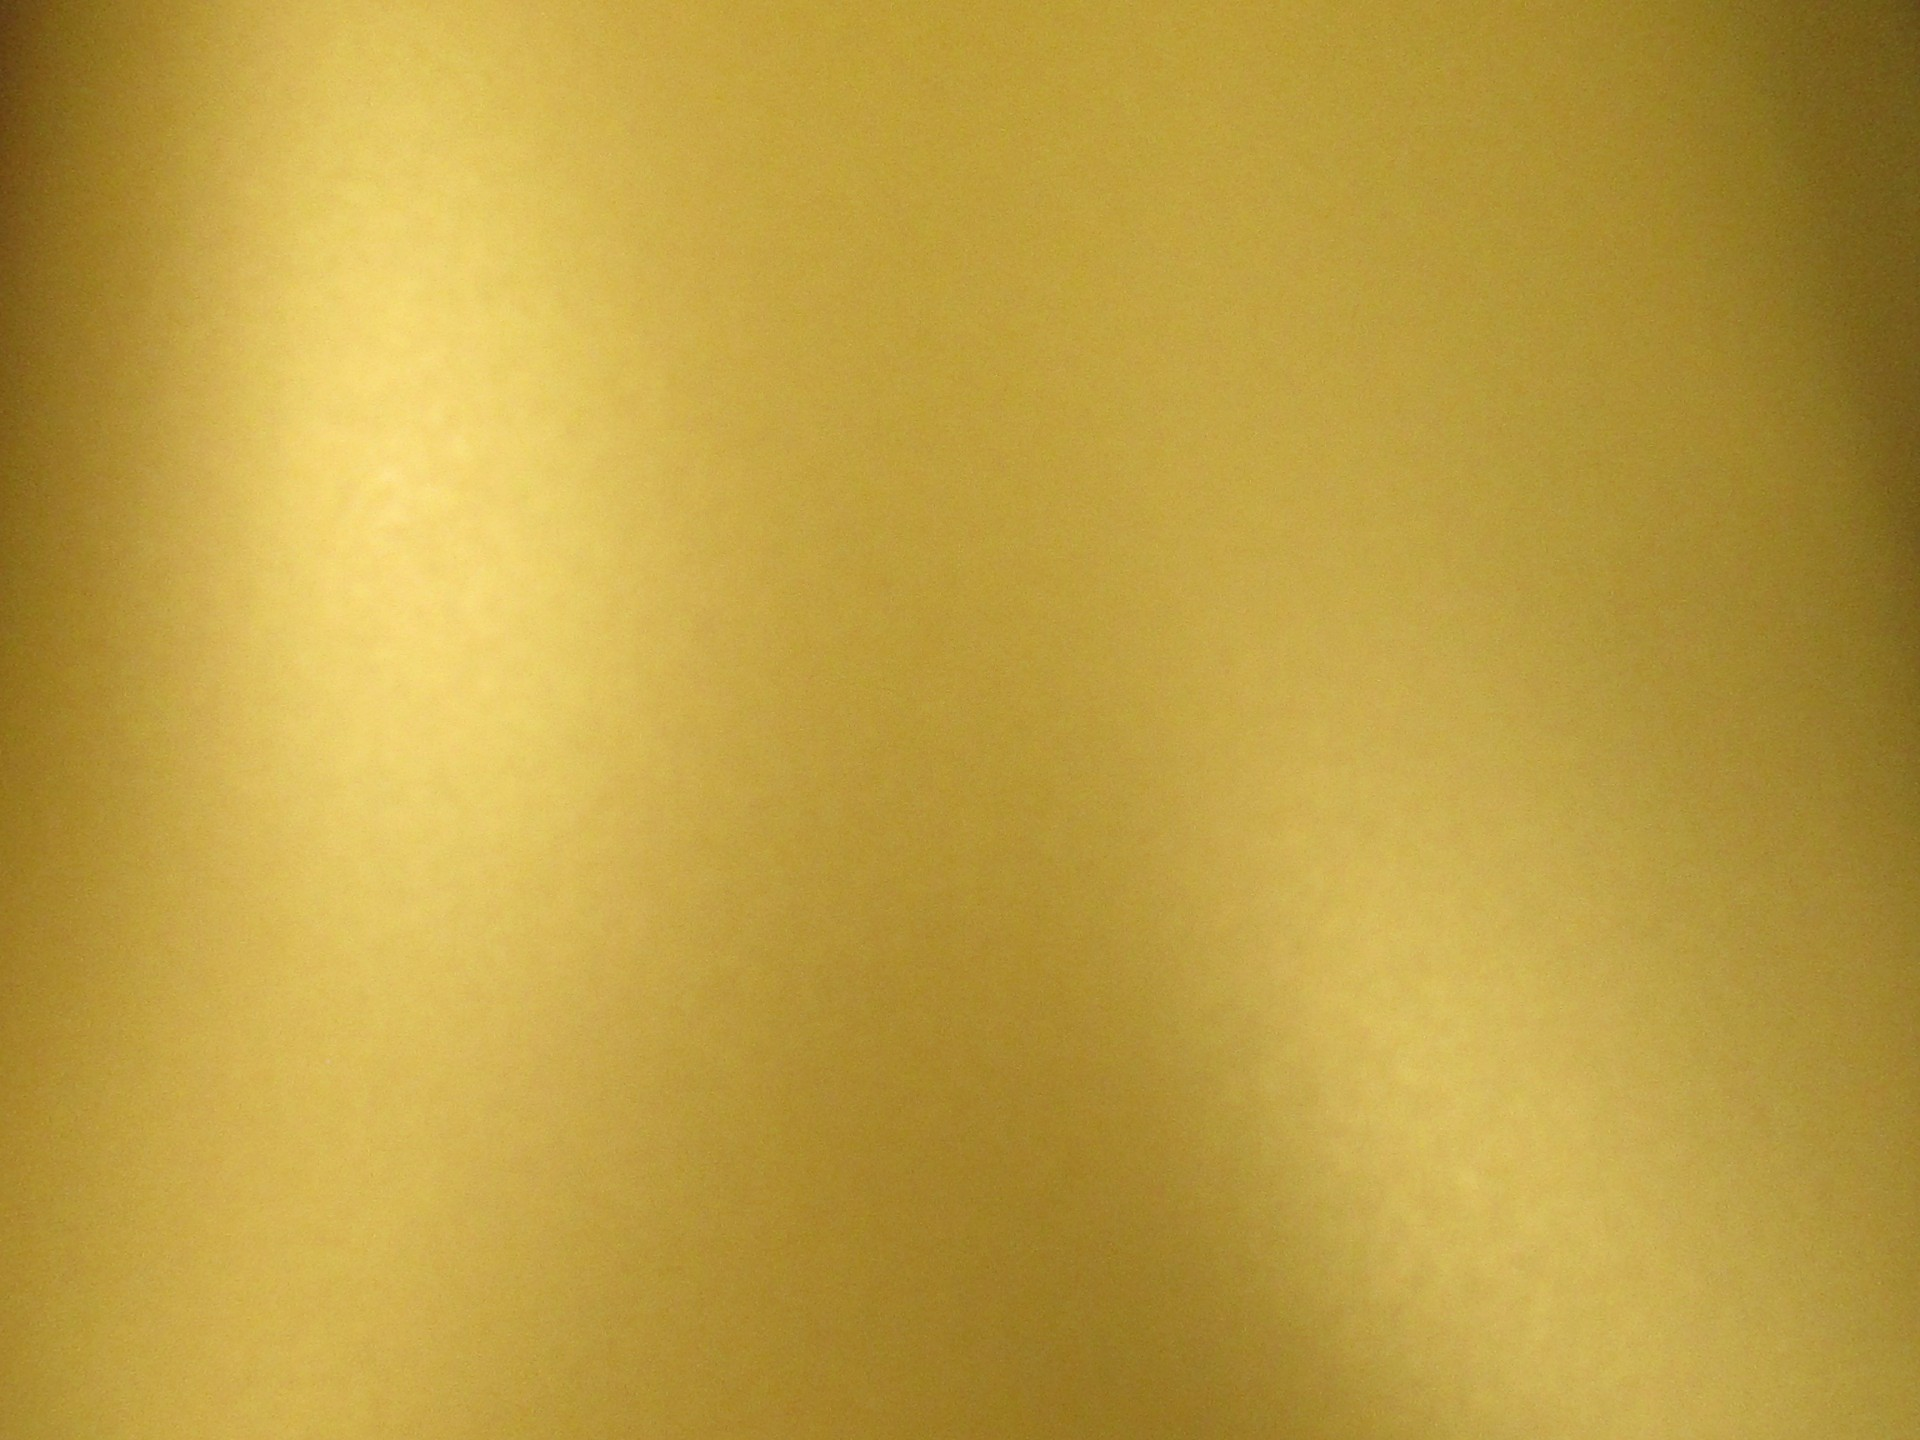 Gold Foil background ·① Download free stunning HD backgrounds for desktop and mobile devices in ...